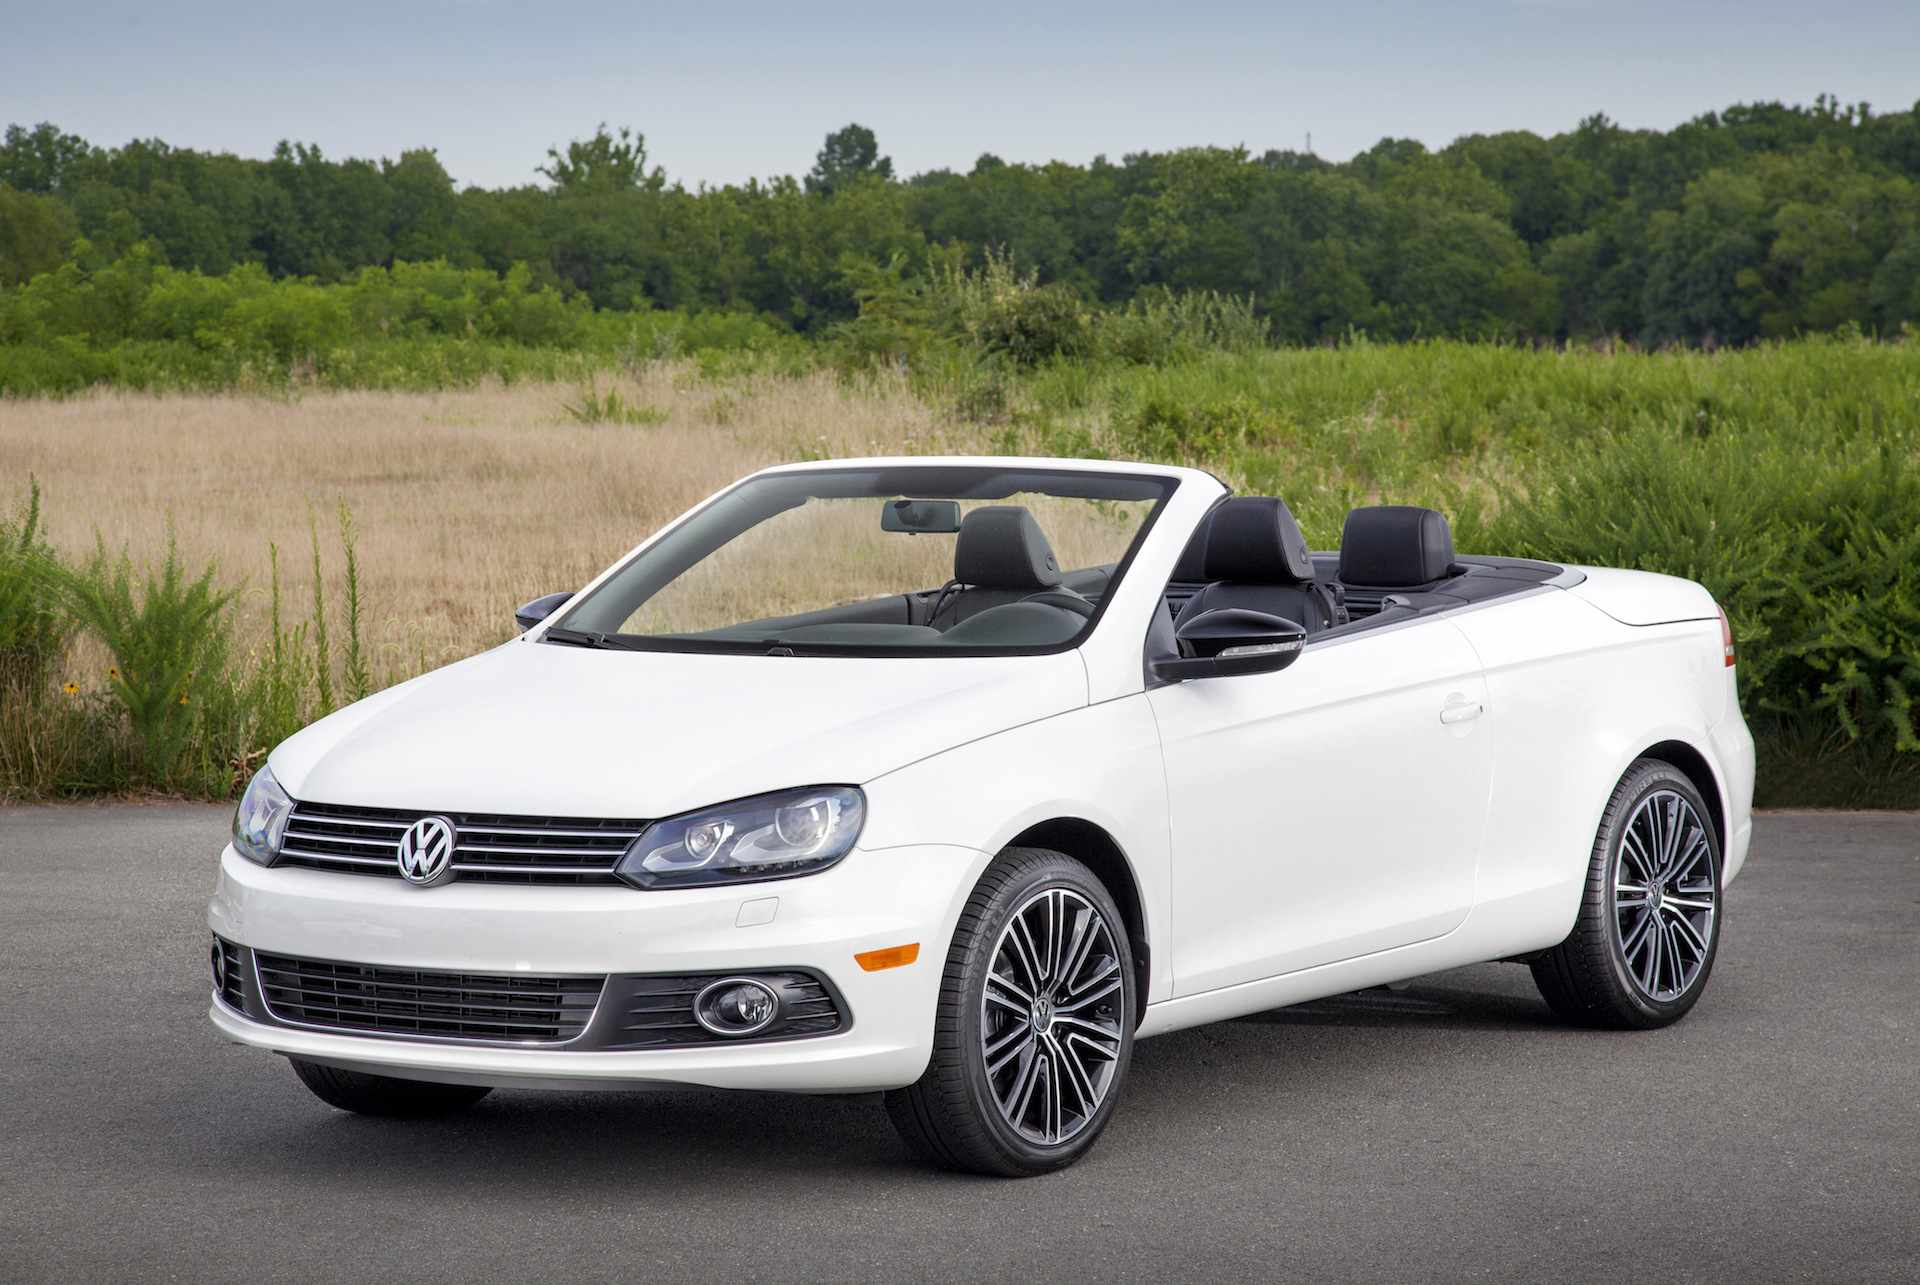 2016 volkswagen eos  vw  review  ratings  specs  prices 2000 VW Beetle Fuse Box Diagram VW Bus Fuse Box Diagram